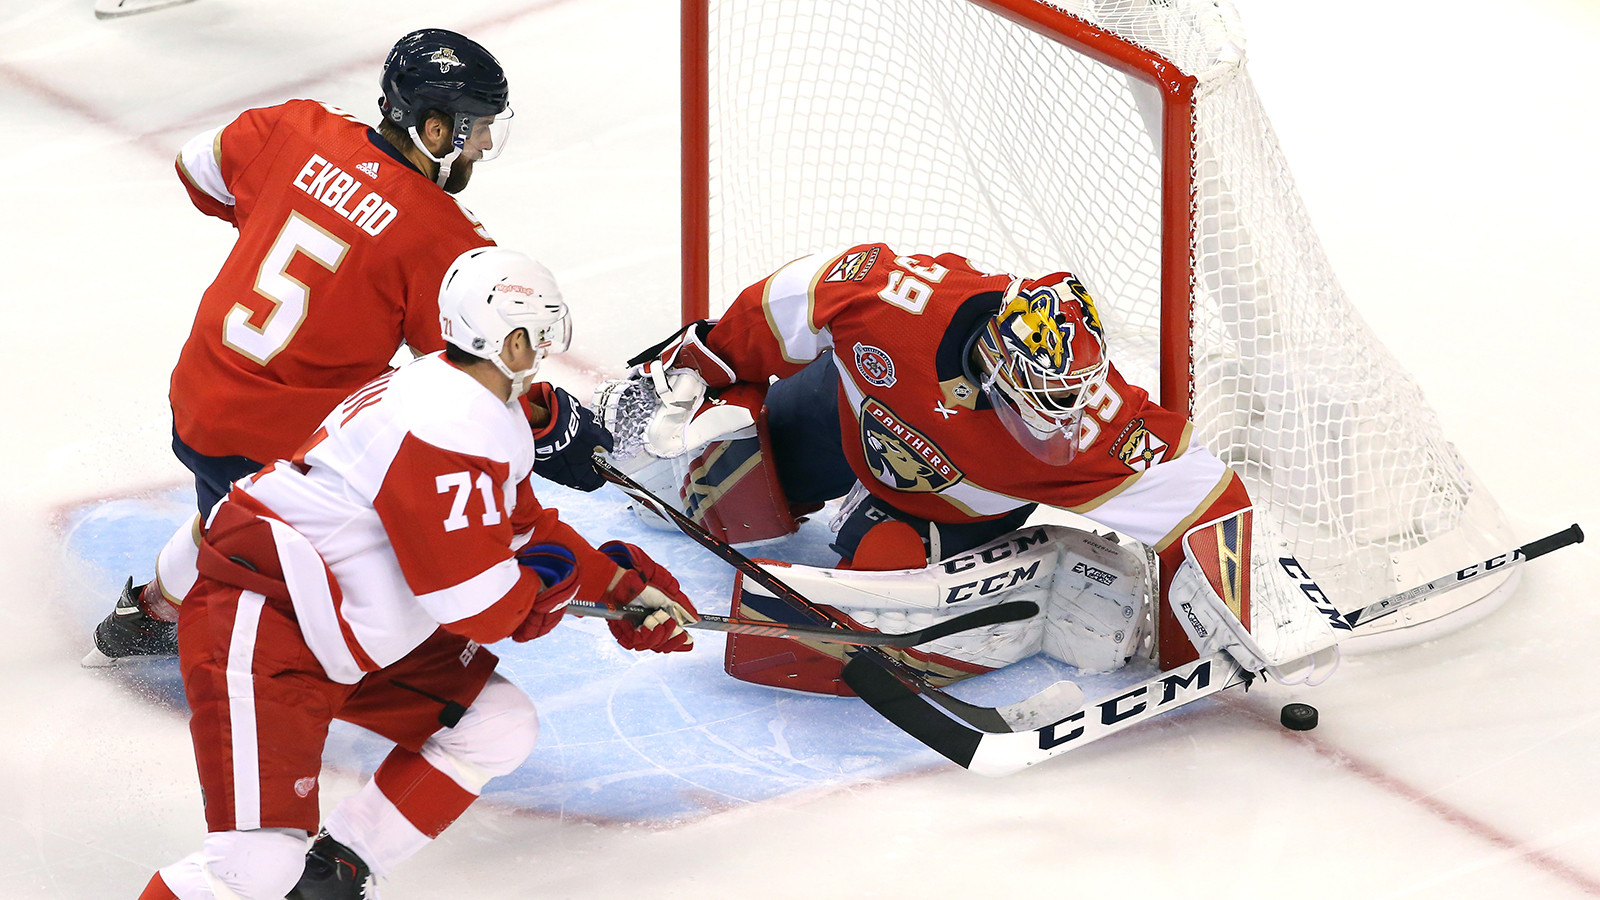 Panthers recall goalie Michael Hutchinson from AHL Springfield on emergency basis